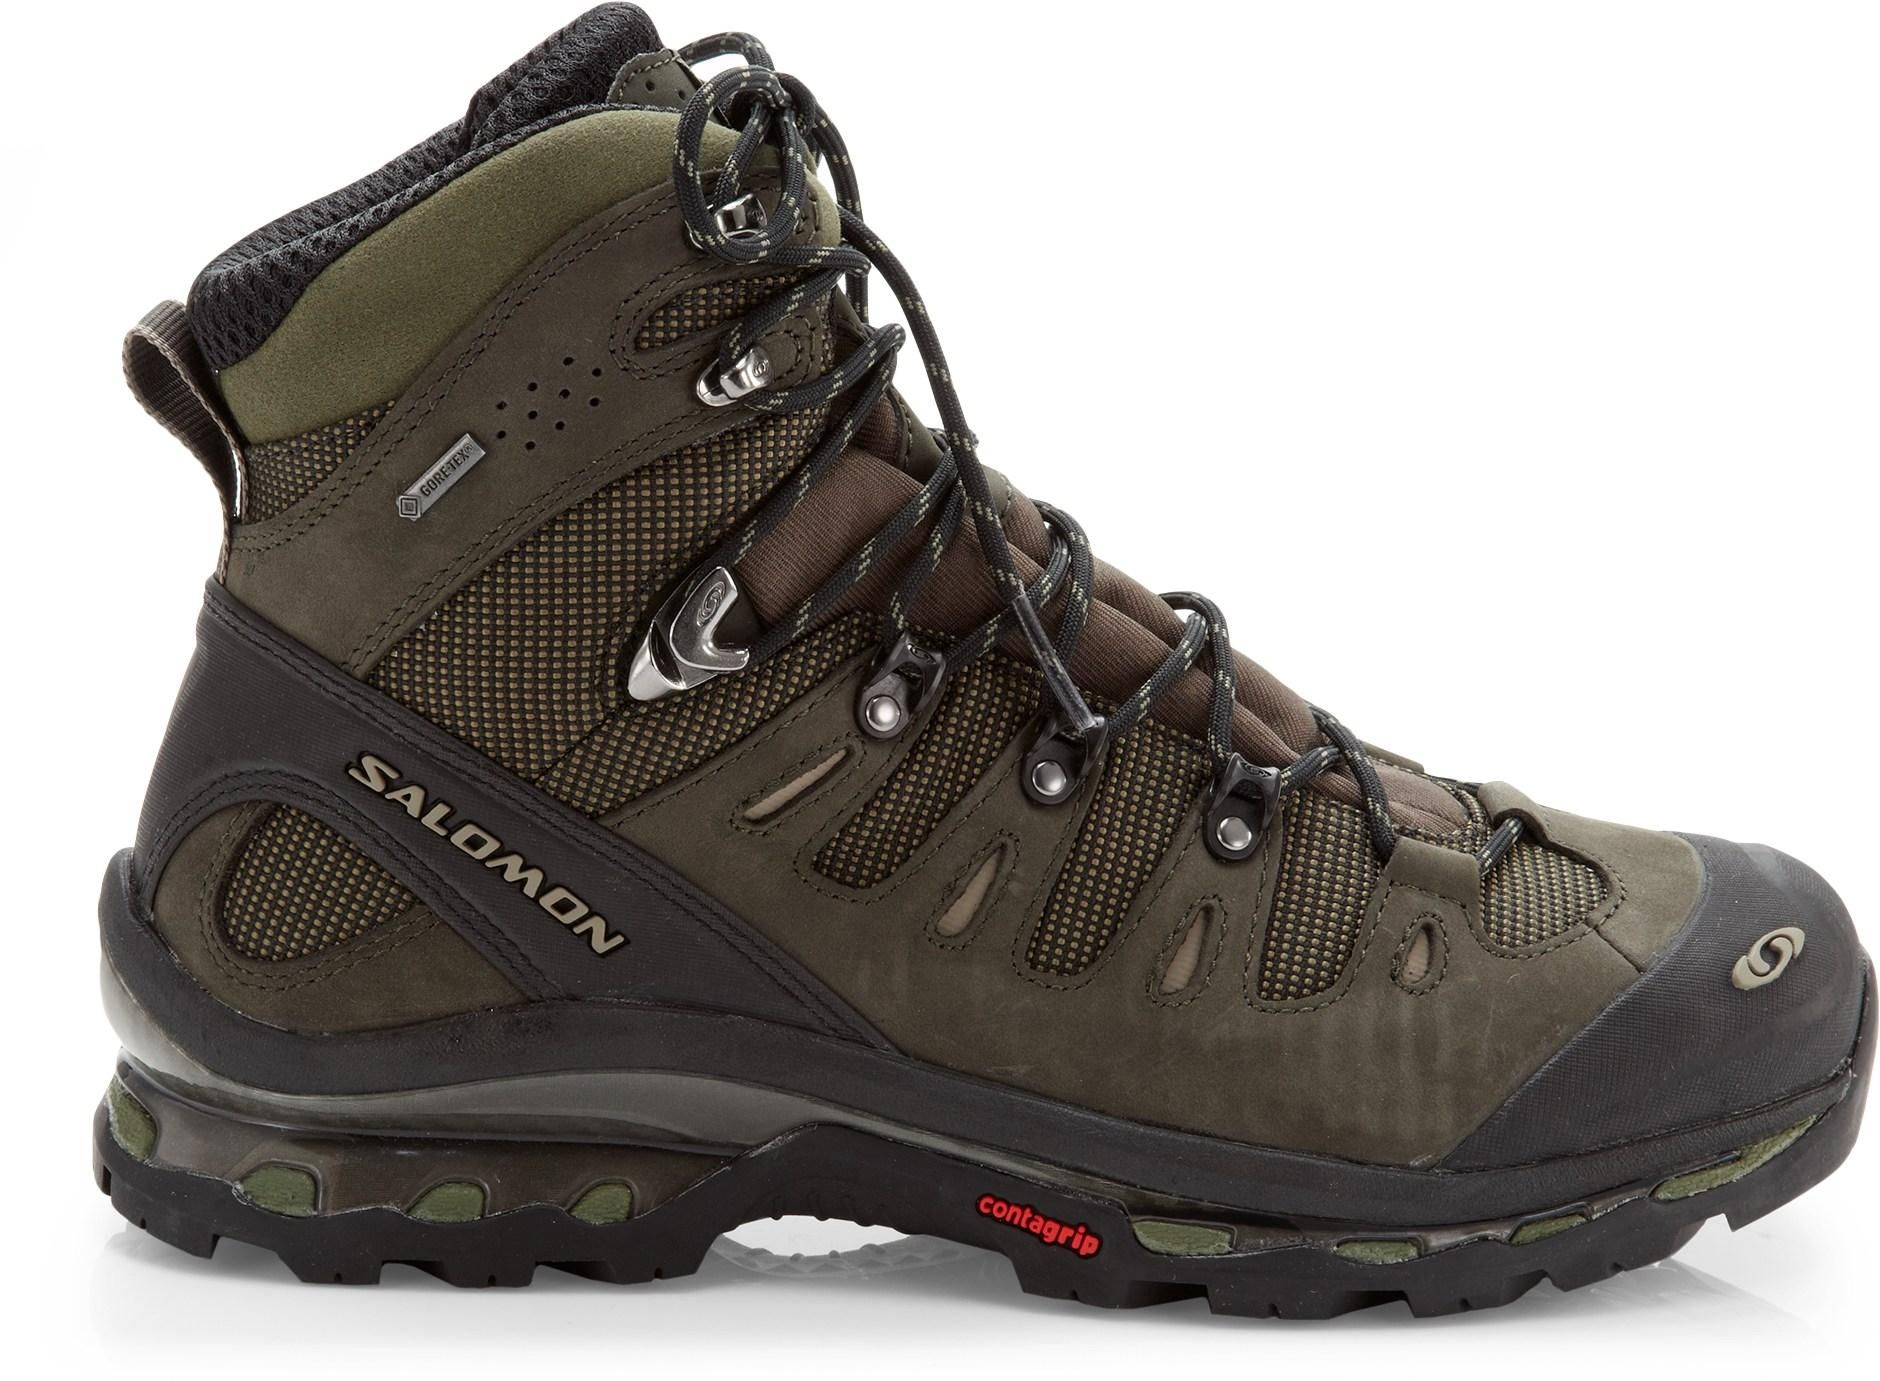 6e6fcce6c5b Quest 4D GTX Hiking Boots - Men's | Camp | Hiking boots, Hiking ...